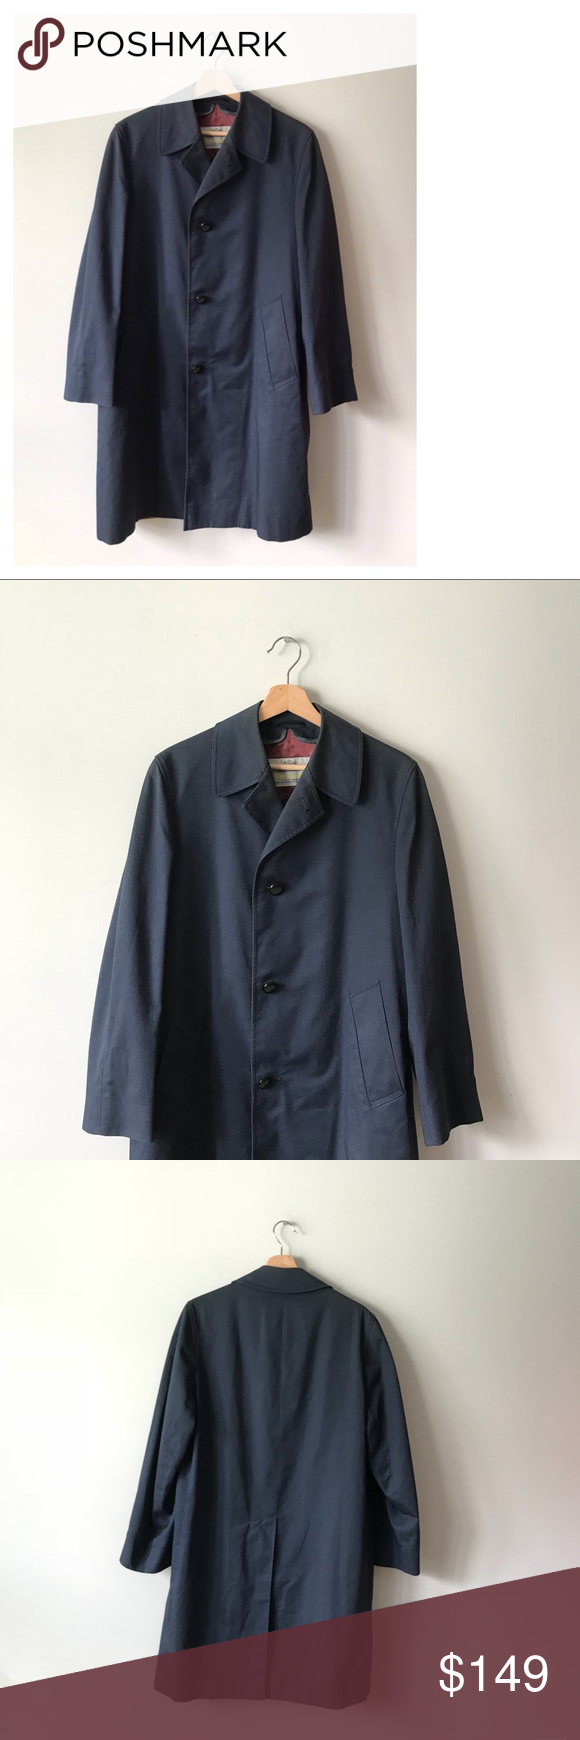 best value low price sale first rate Vintage Aquascutum London Coat Jacket Navy S Chest/Bust: 44 ...